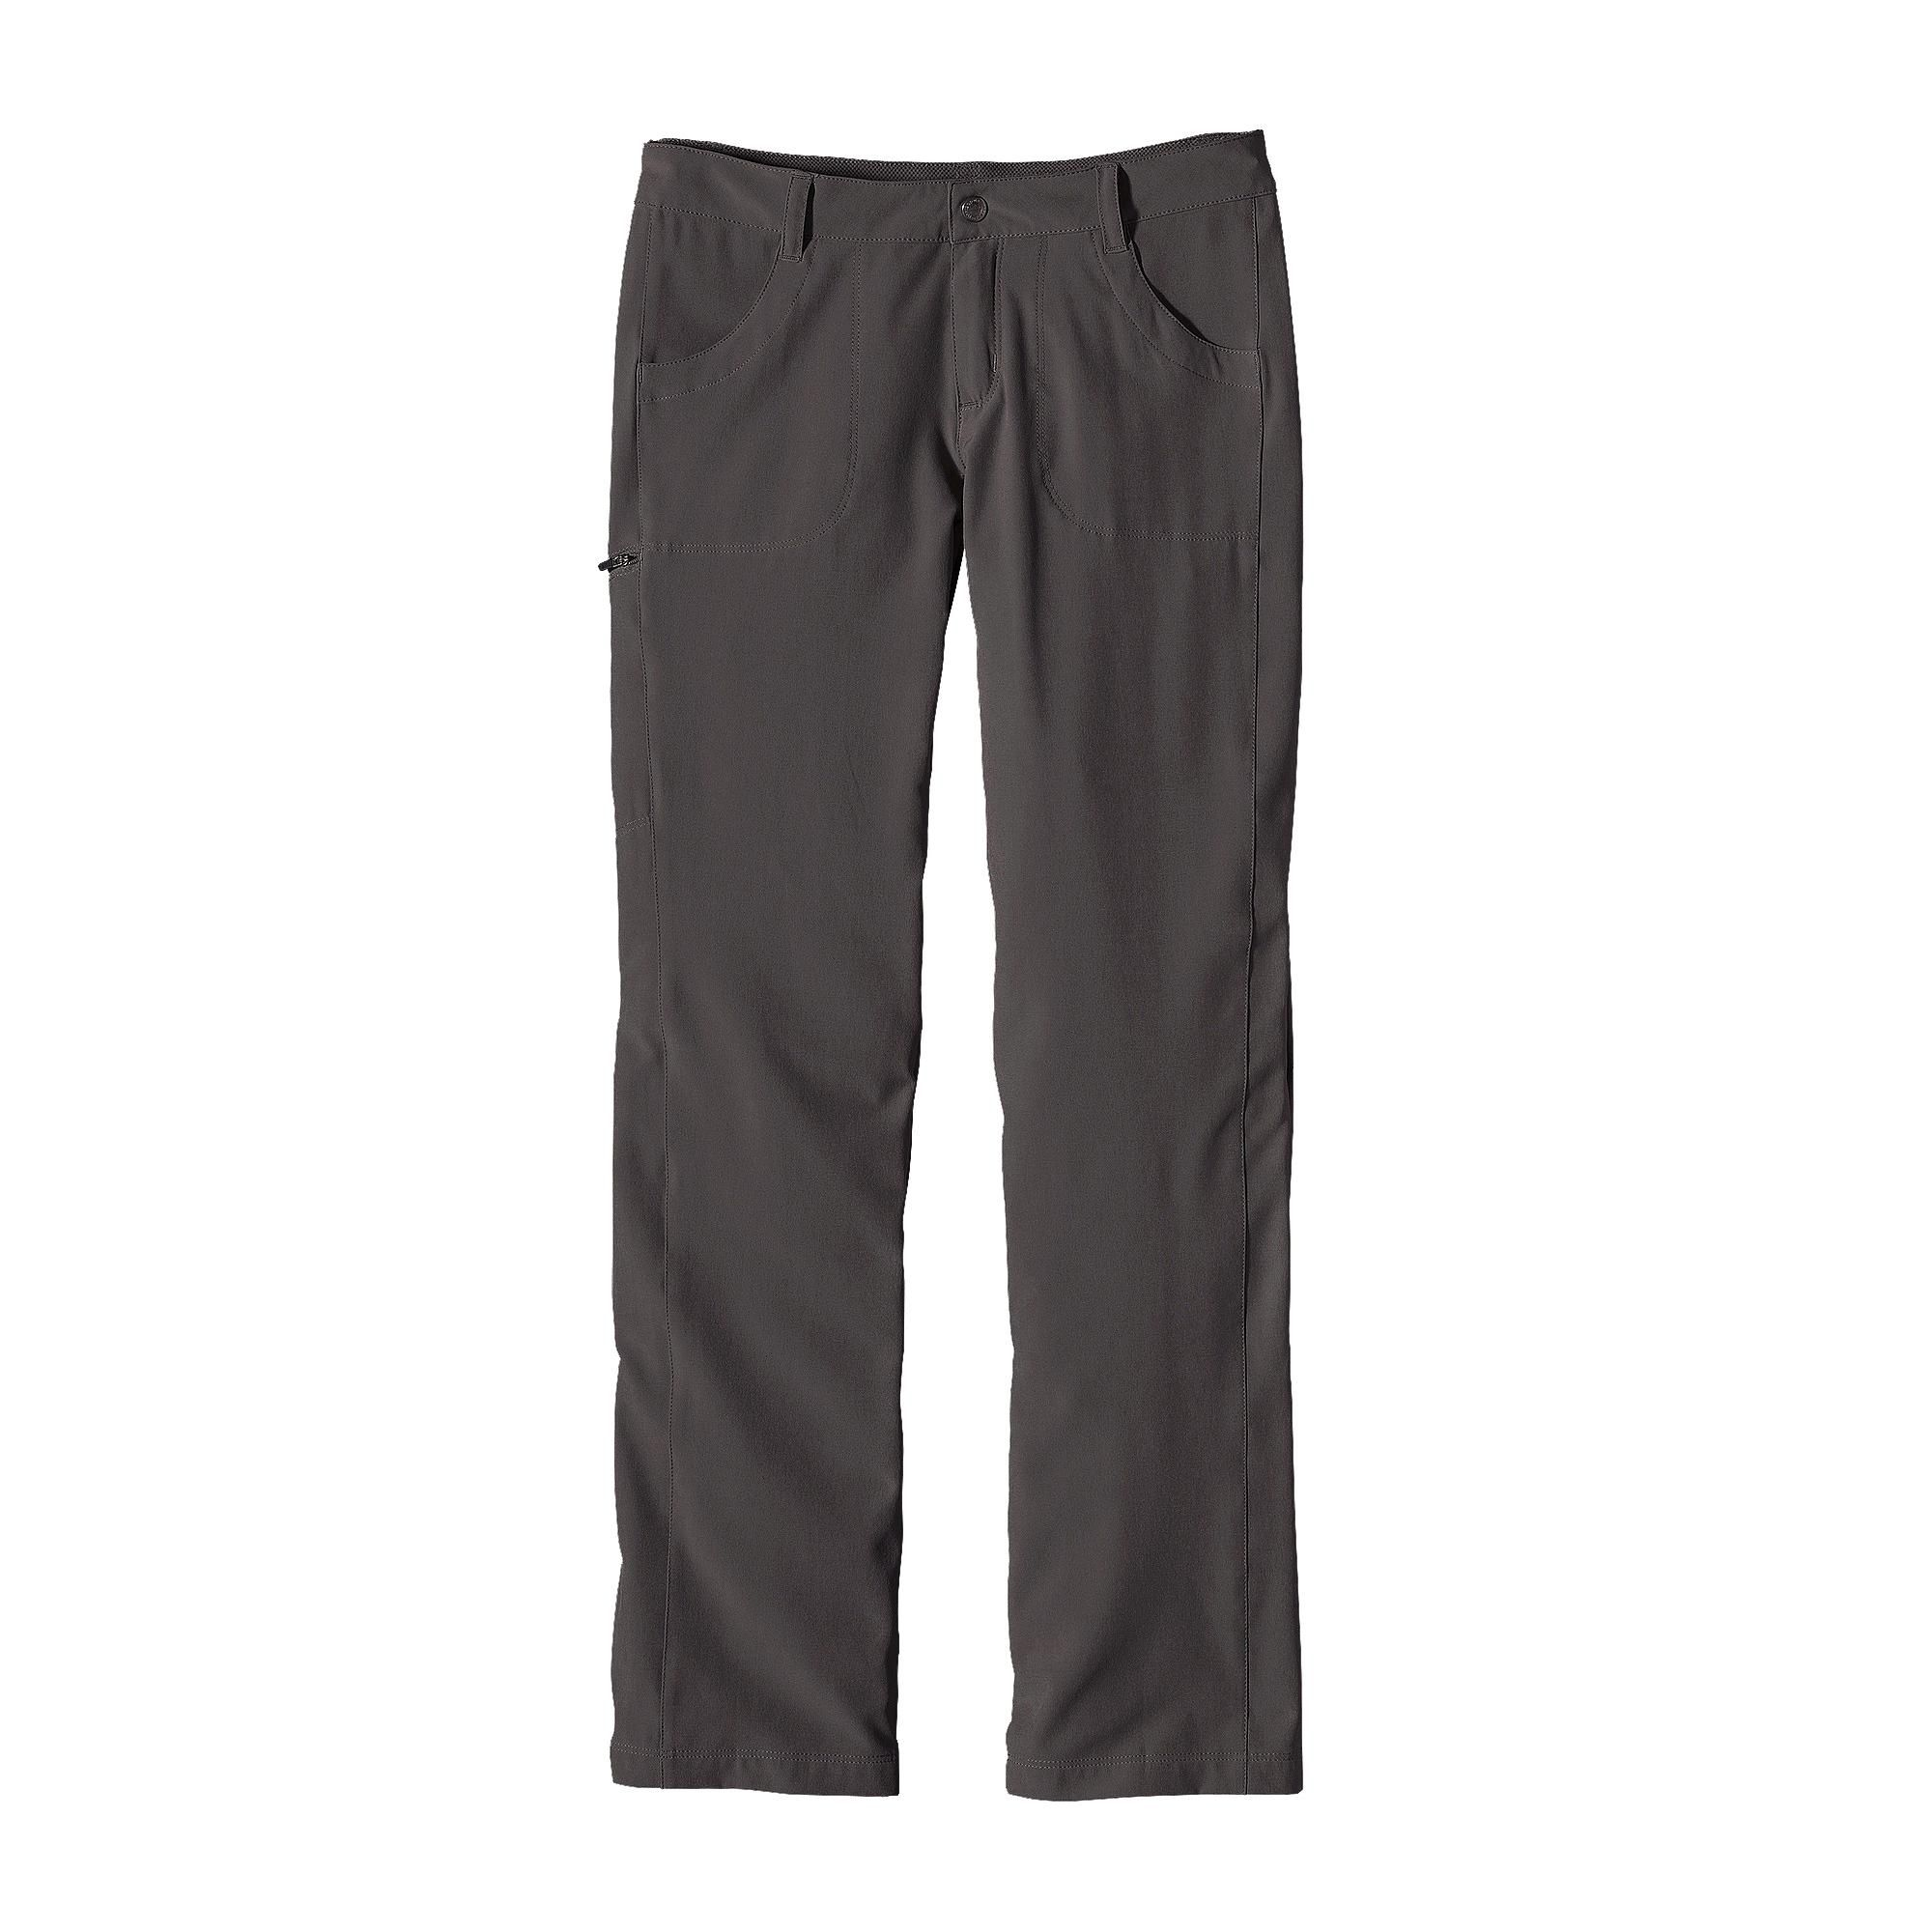 9fa173a26204 The Patagonia Women's Happy Hike Pants offer lightweight mobility,  quick-dry times and versatility with 4-way stretch. Check 'em out.